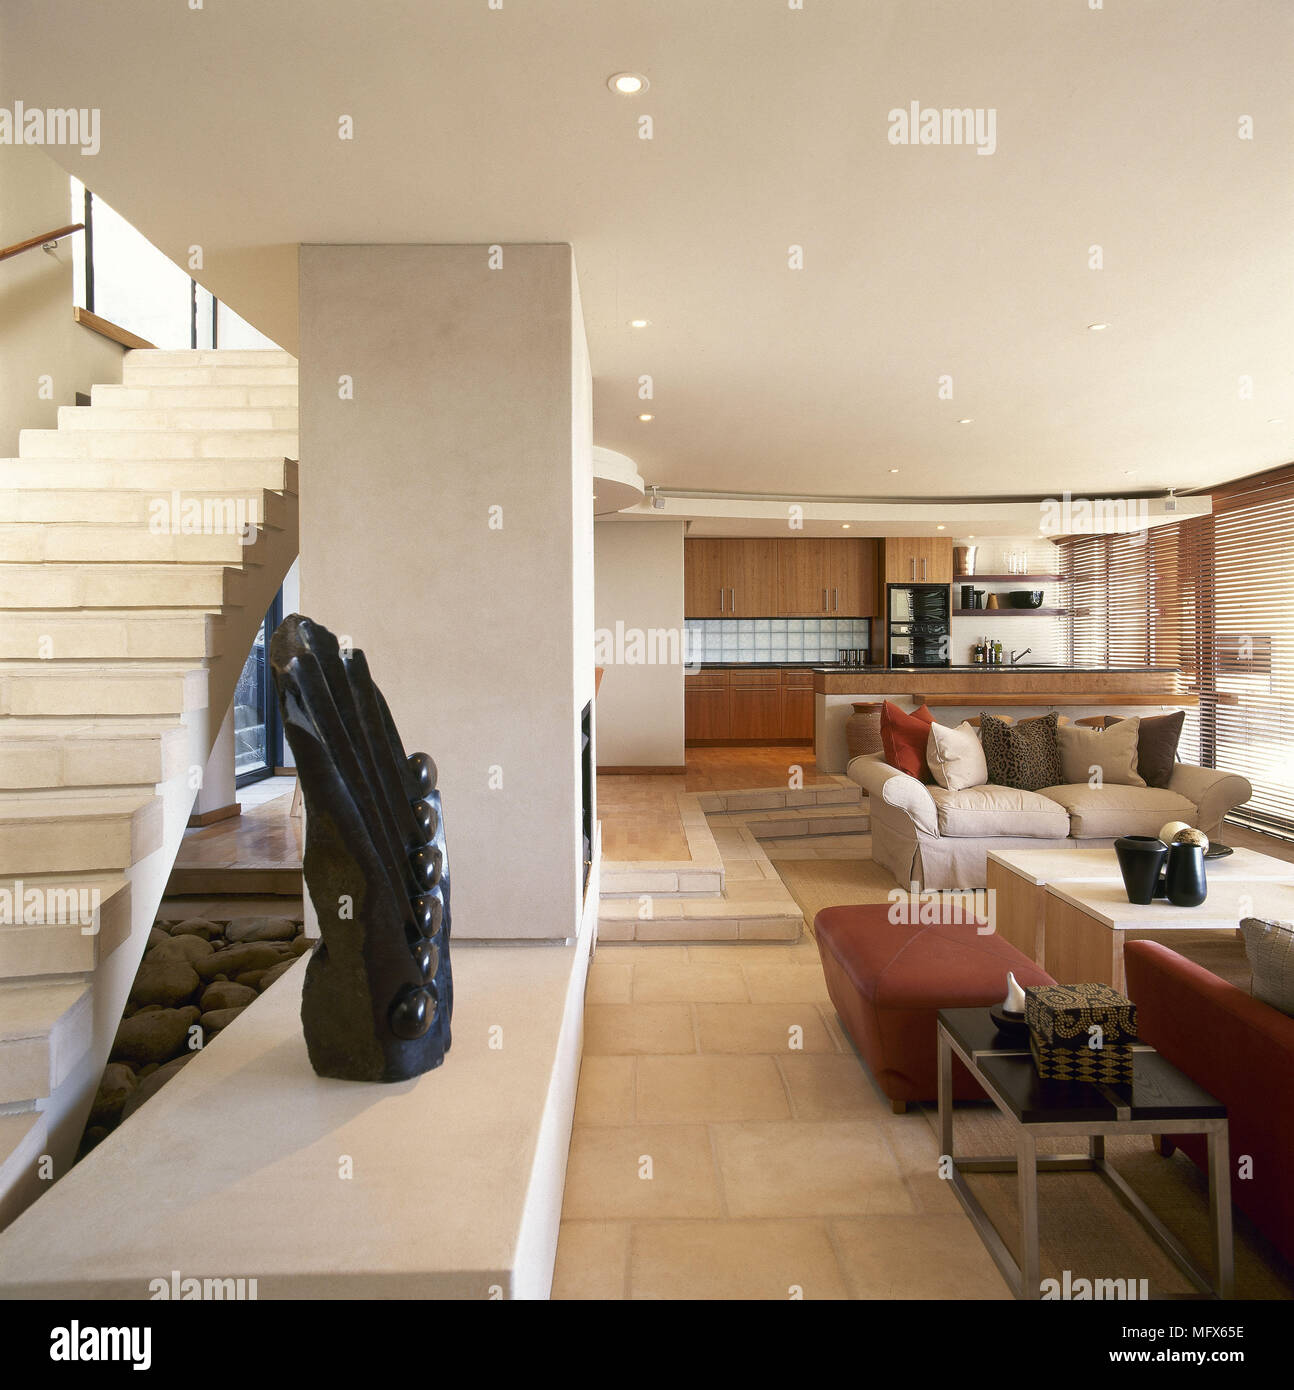 Modern Open Plan Sitting Room Kitchen Area Stone Walls Flooring Stairs Sofa Interiors Open Plan Rooms Living Spaces Neutral Natural Materials Colours Stock Photo Alamy